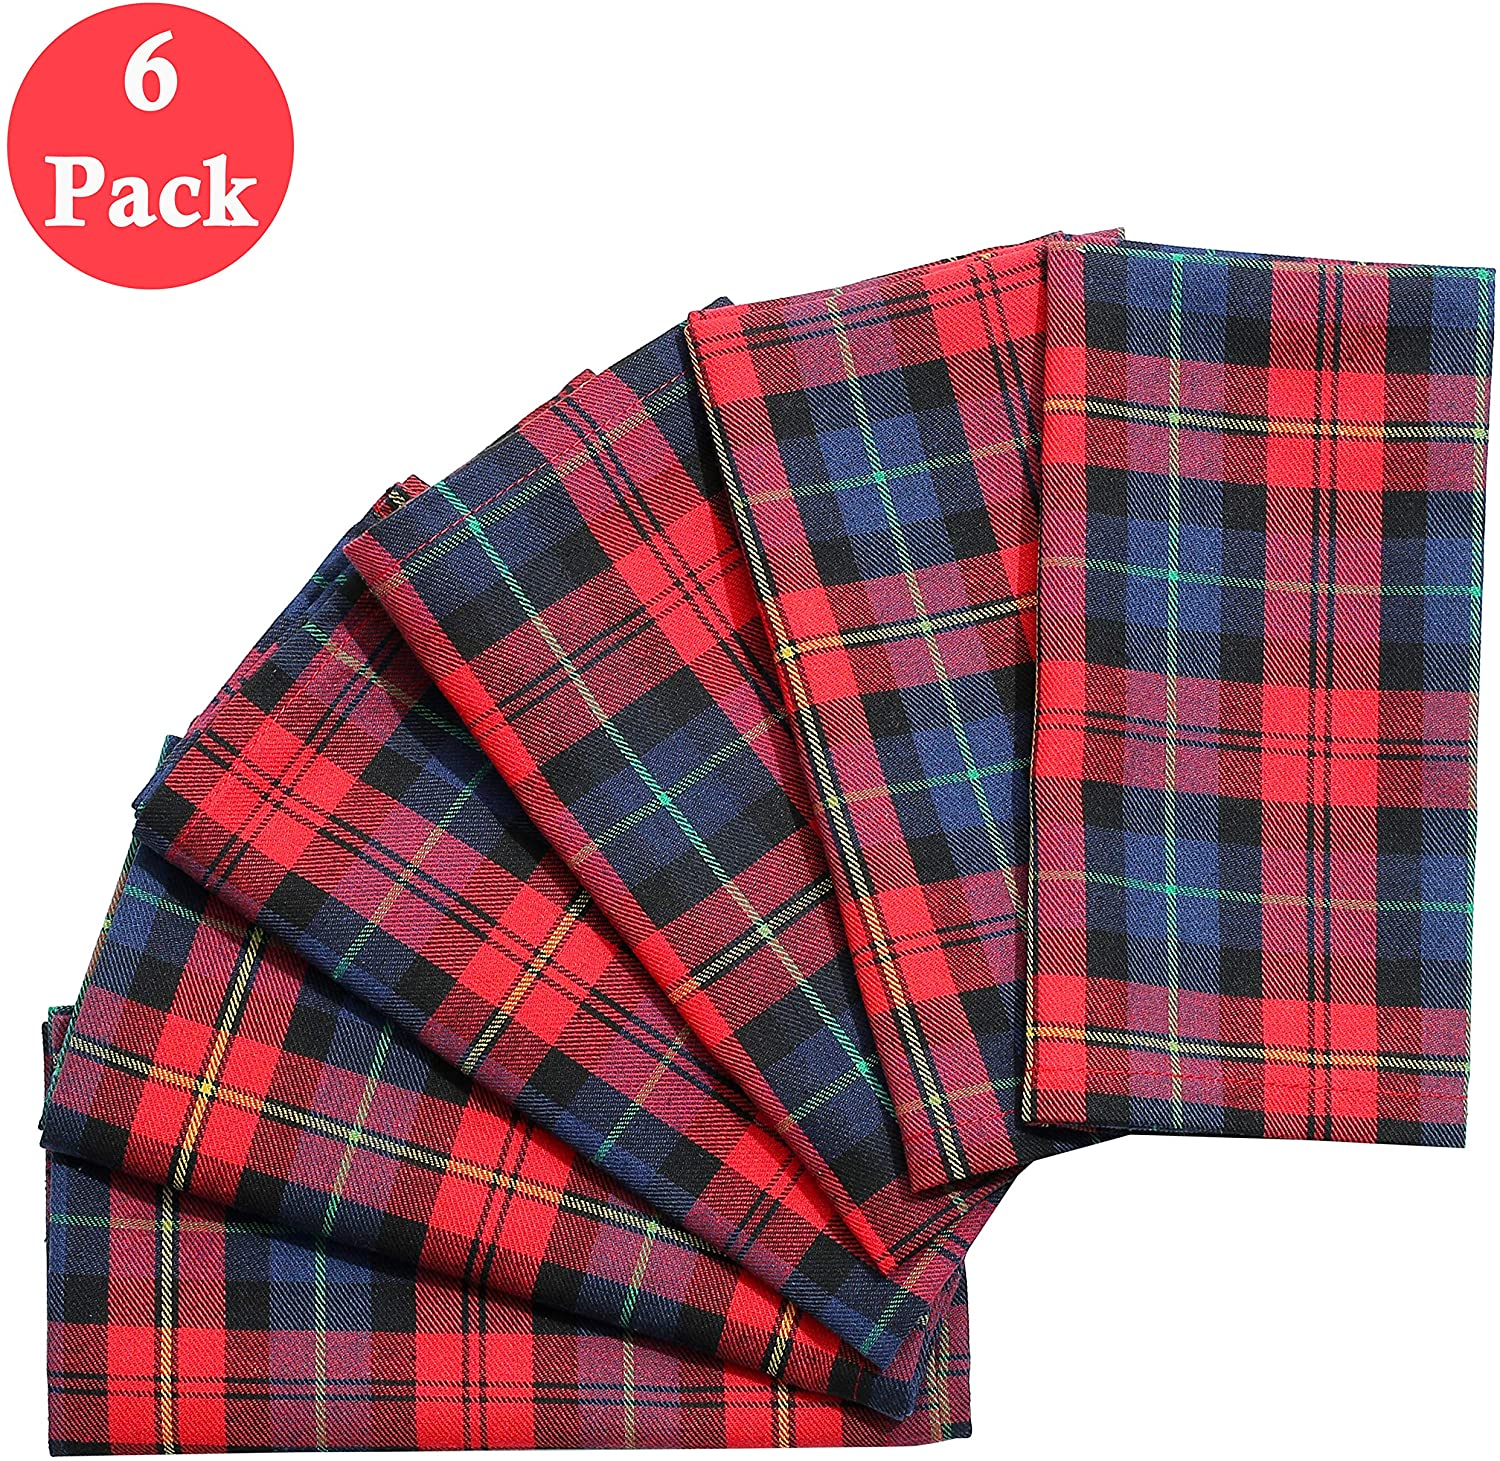 BETTERLINE 6 Plaid Tartan Oversized Napkins (17x17 Inches) for Everyday Place Settings, Rustic Farmhouse Decor, Christmas, Thanksgiving Dinner, Holidays, Family Dinners and BBQ's (Red Tartan Plaid)